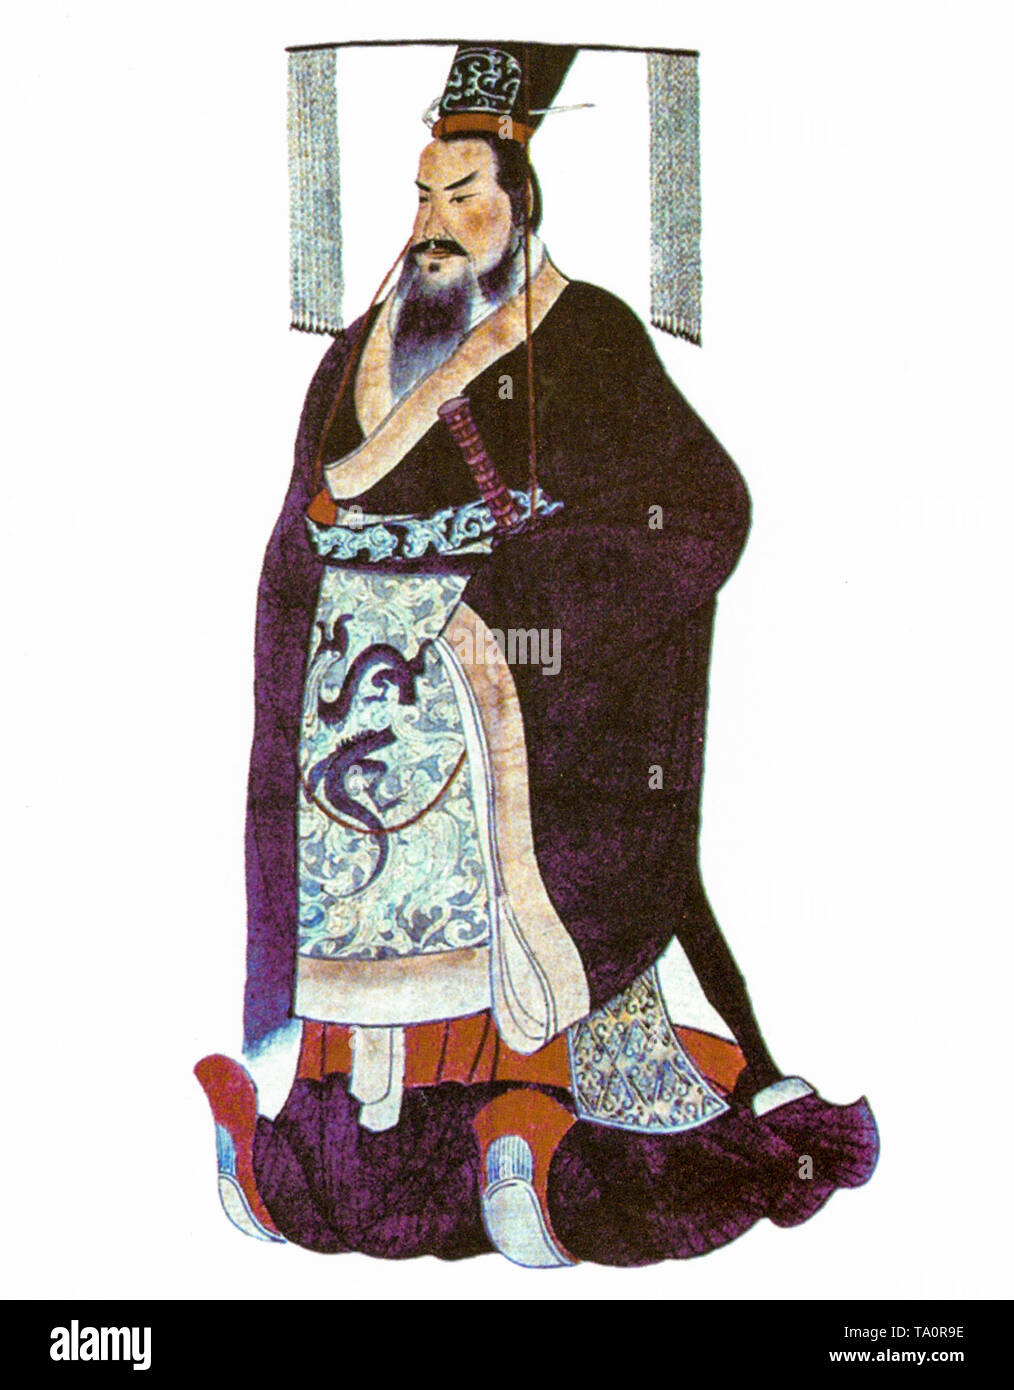 Qin Shi Huang, the first emperor of China, portrait painting, c 1850 - Stock Image